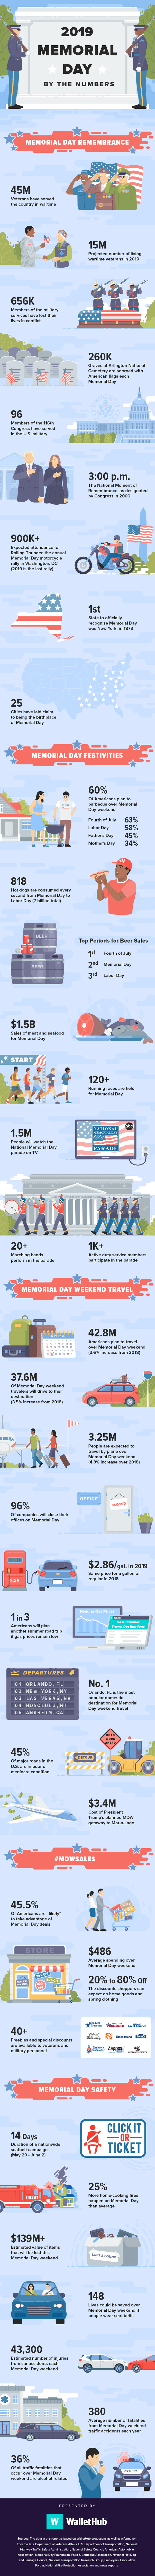 Memorial Day 2019 as a Special Day